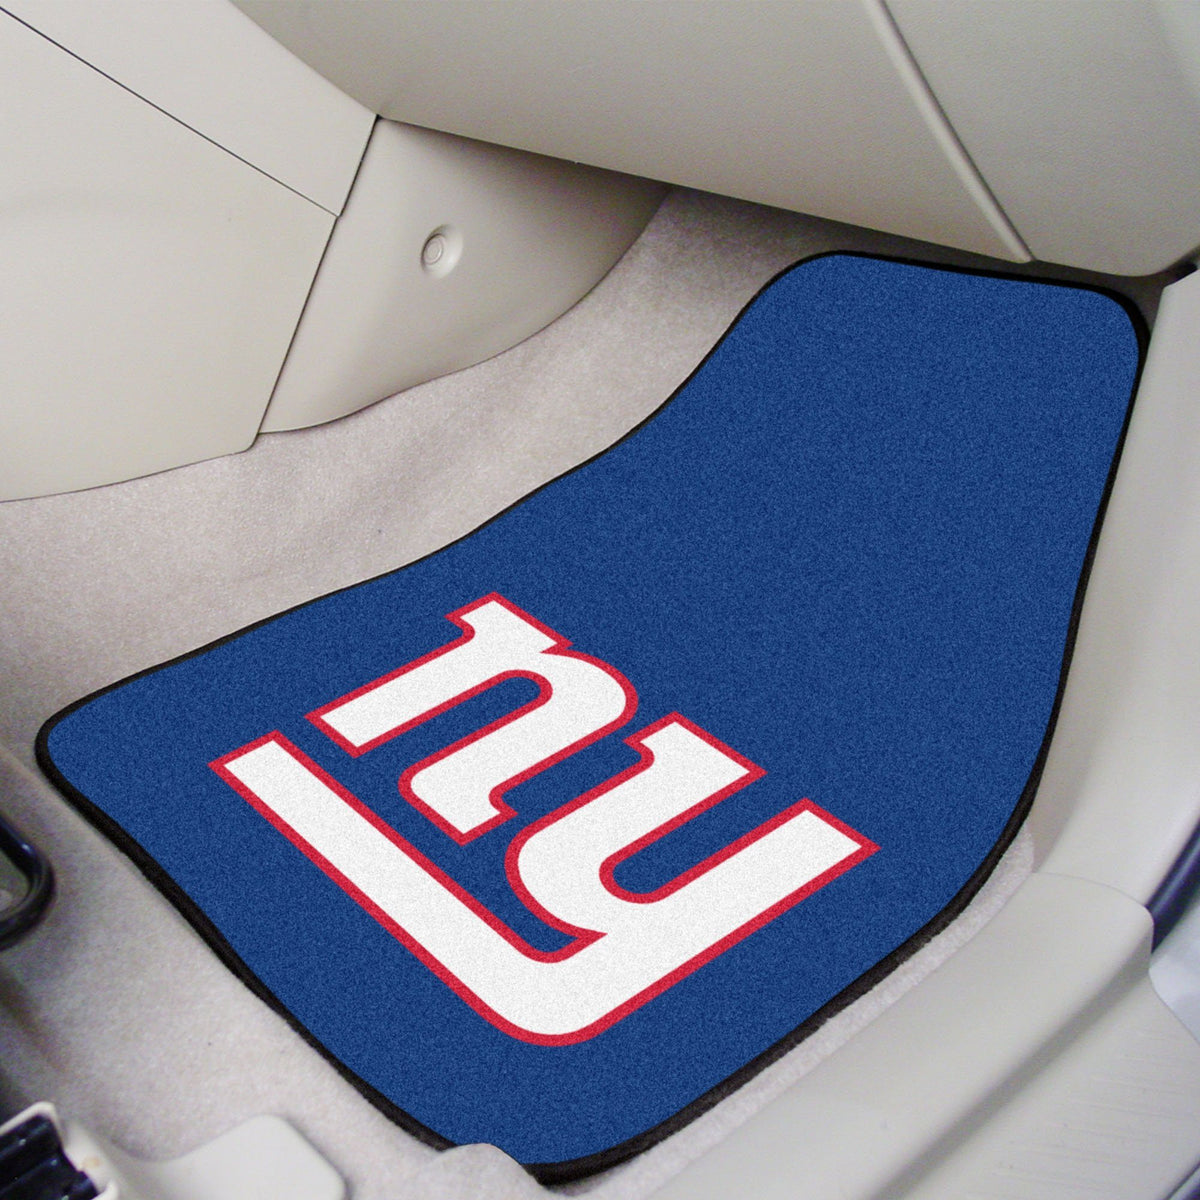 "NFL - 2-pc Carpet Car Mat Set, 17"" x 27"" NFL Mats, Front Car Mats, 2-pc Carpet Car Mat Set, NFL, Auto Fan Mats New York Giants"